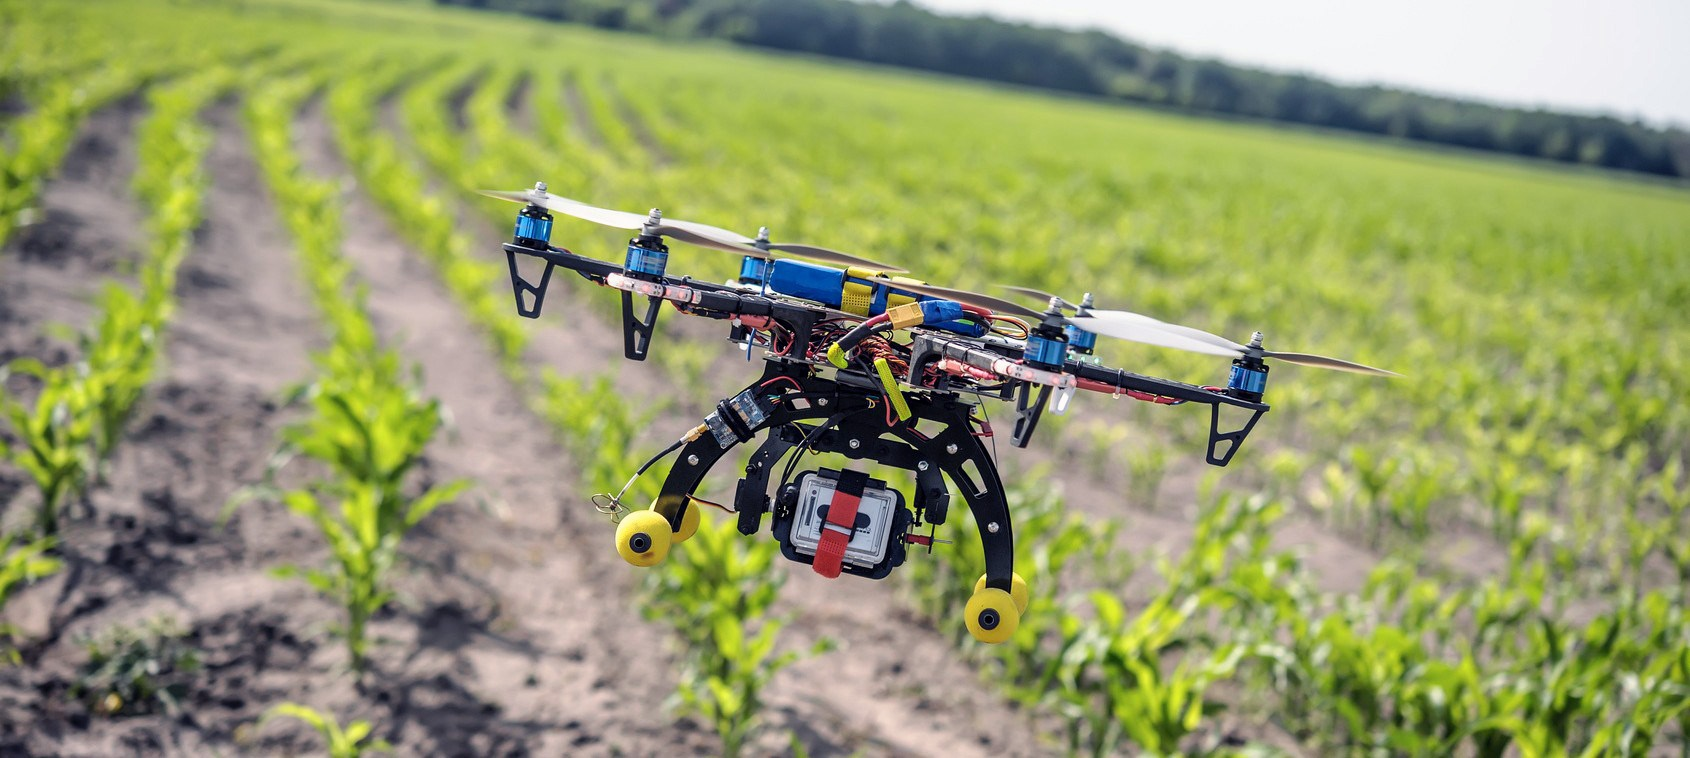 use-of-drones-in-agriculture-banner.jpg